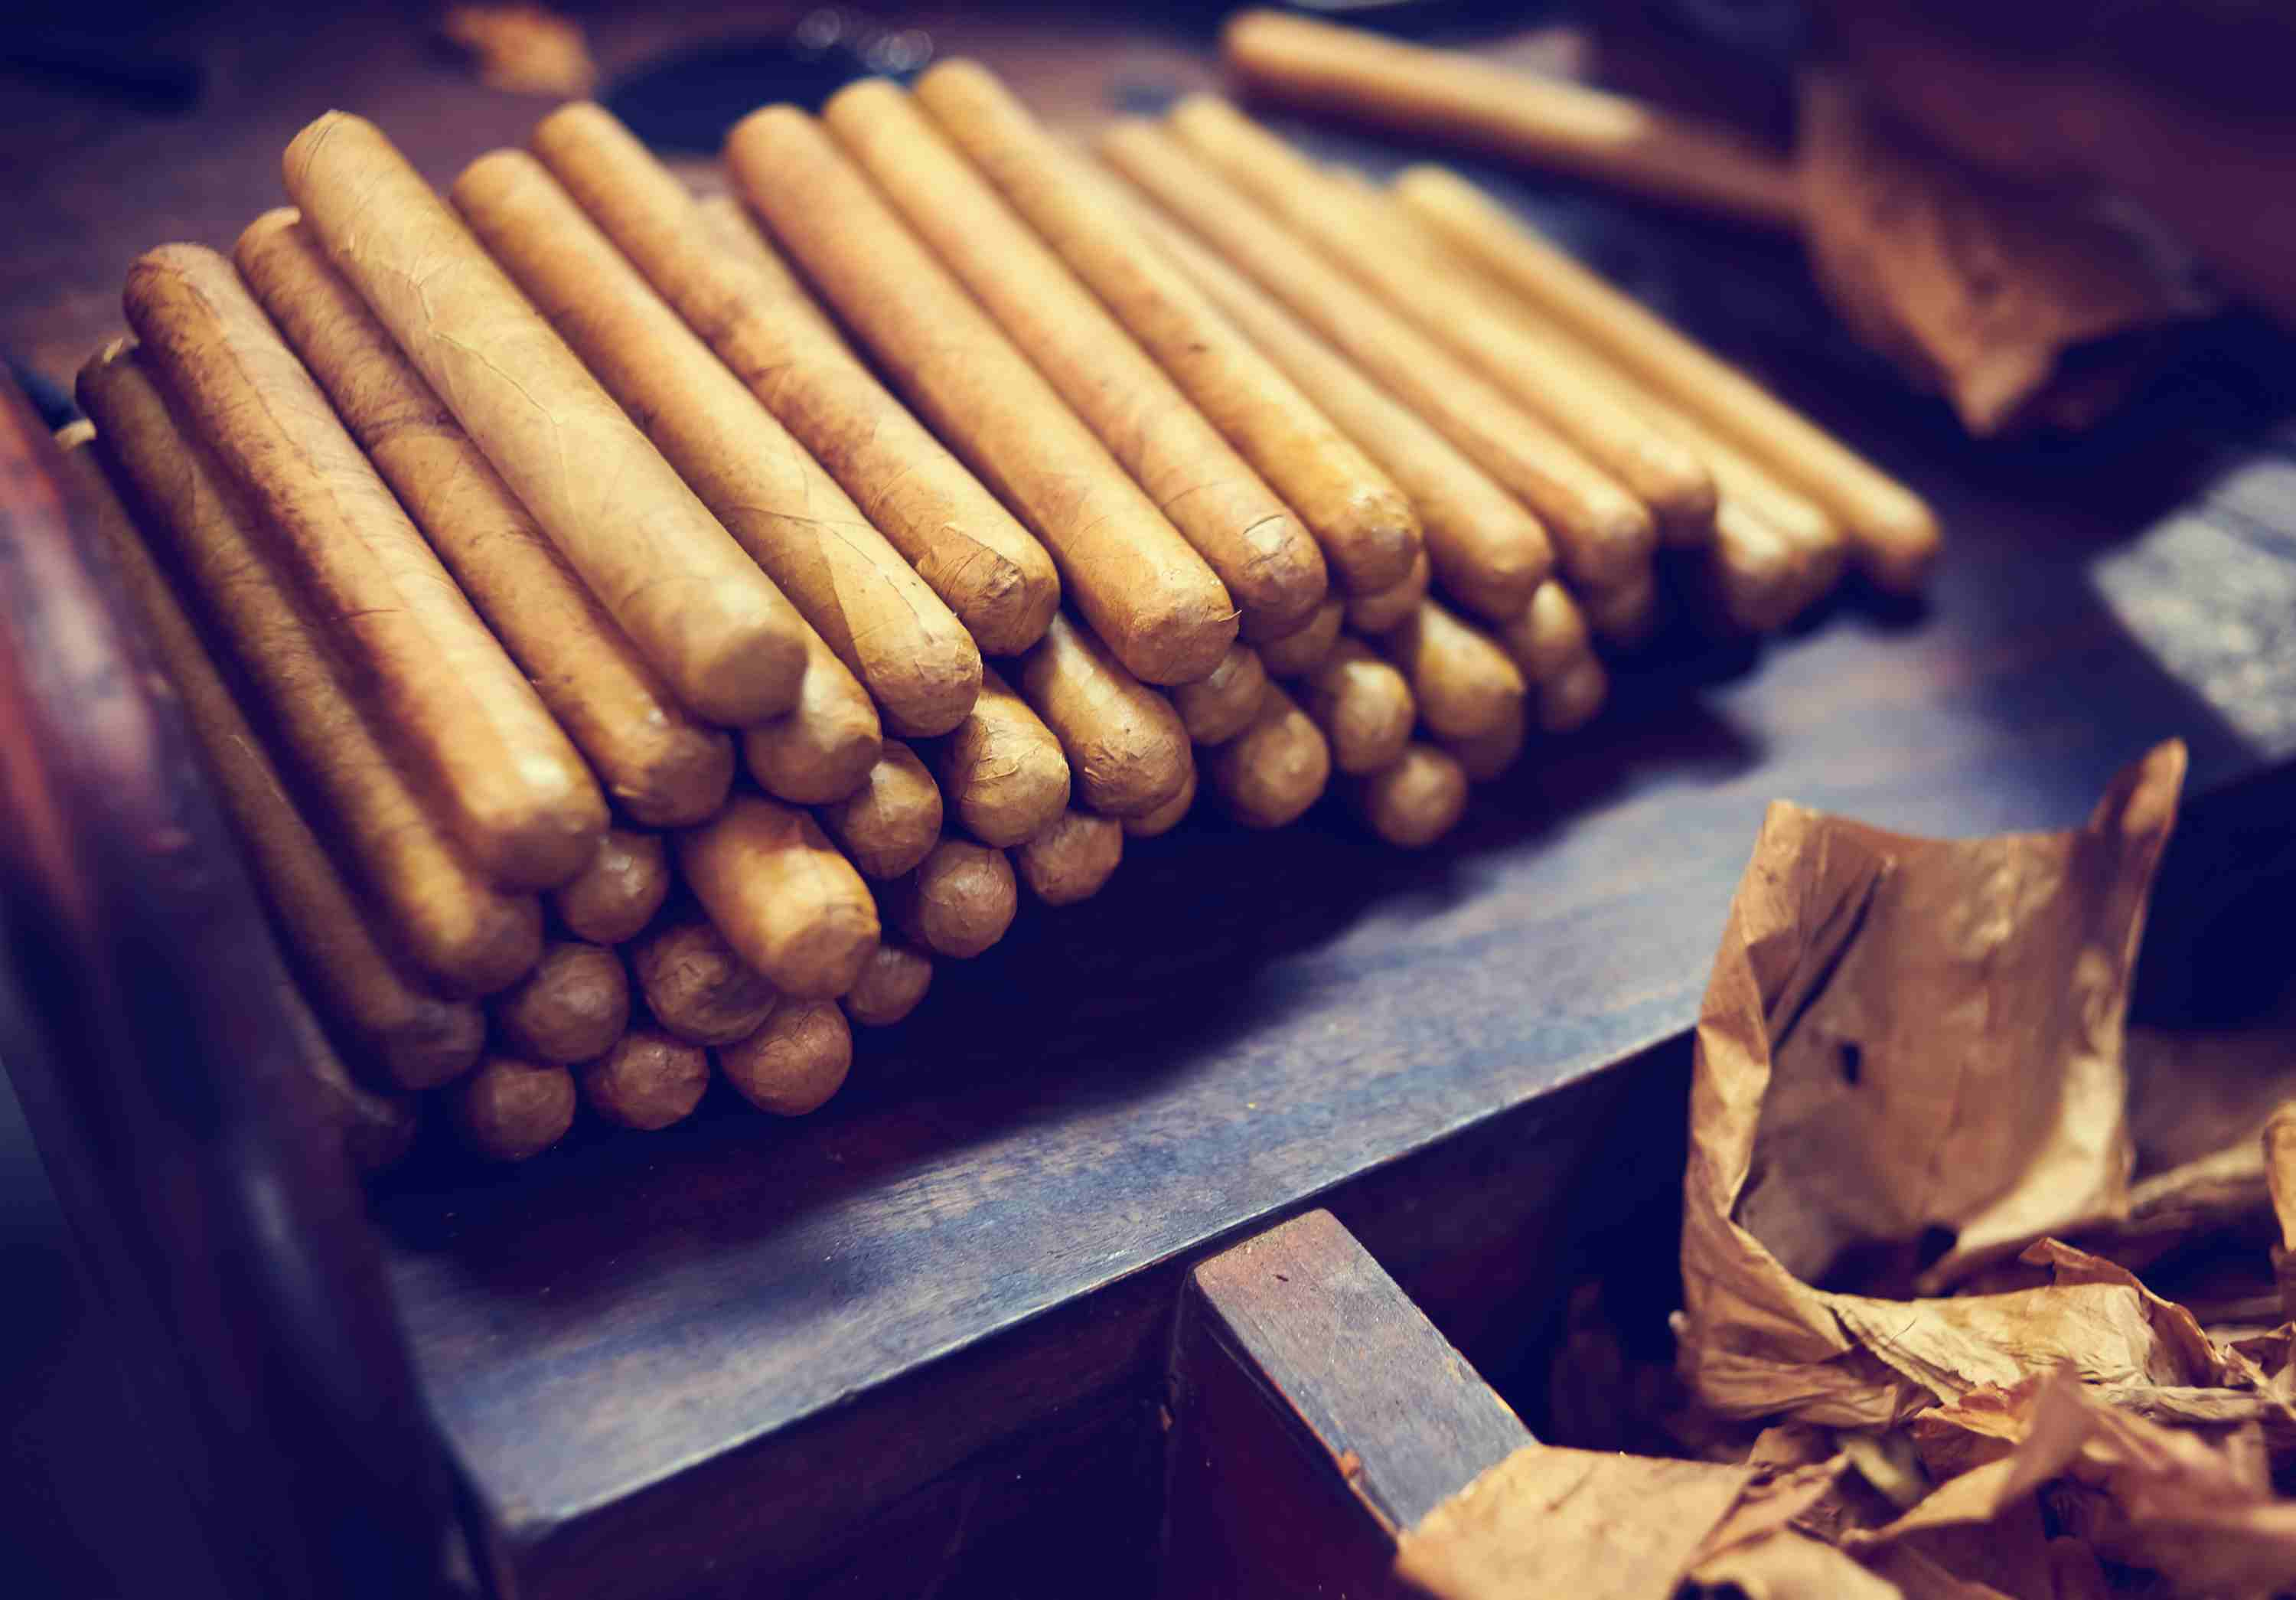 Stock of handmade cigars.Traditional manufacture of cigars. Dominican Republic